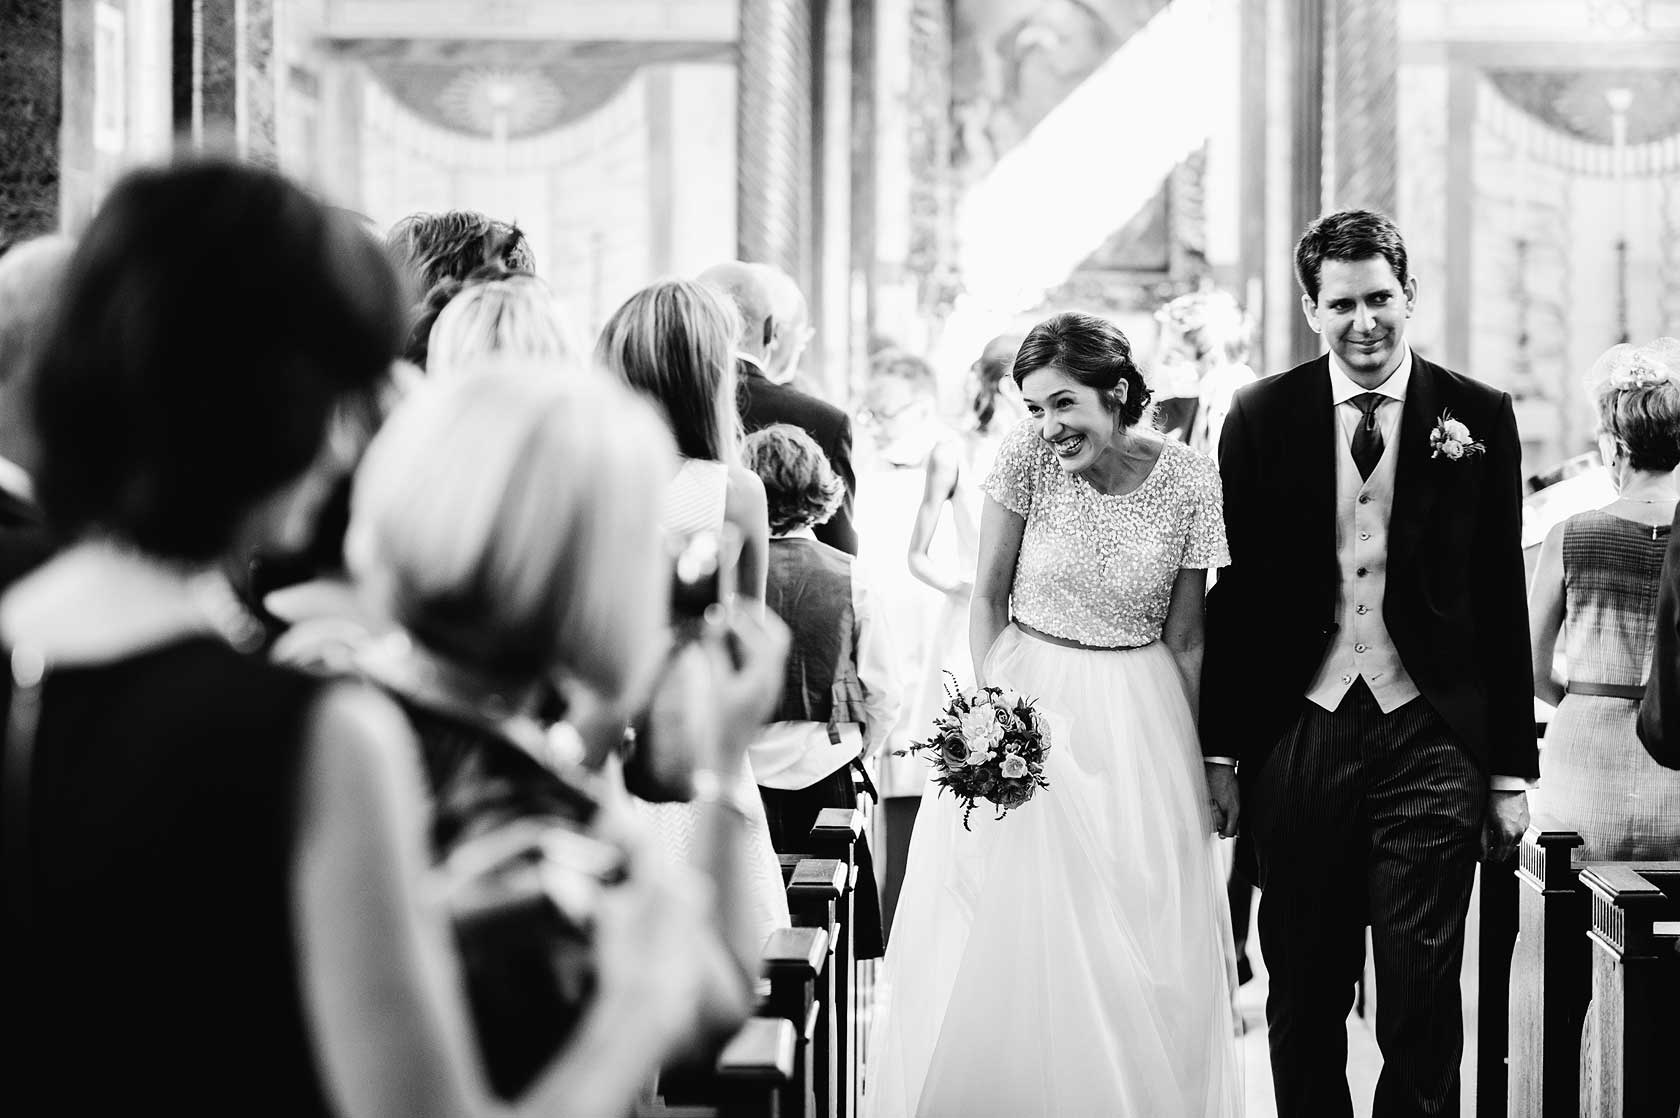 Reportage Wedding Photography at Kenwood House